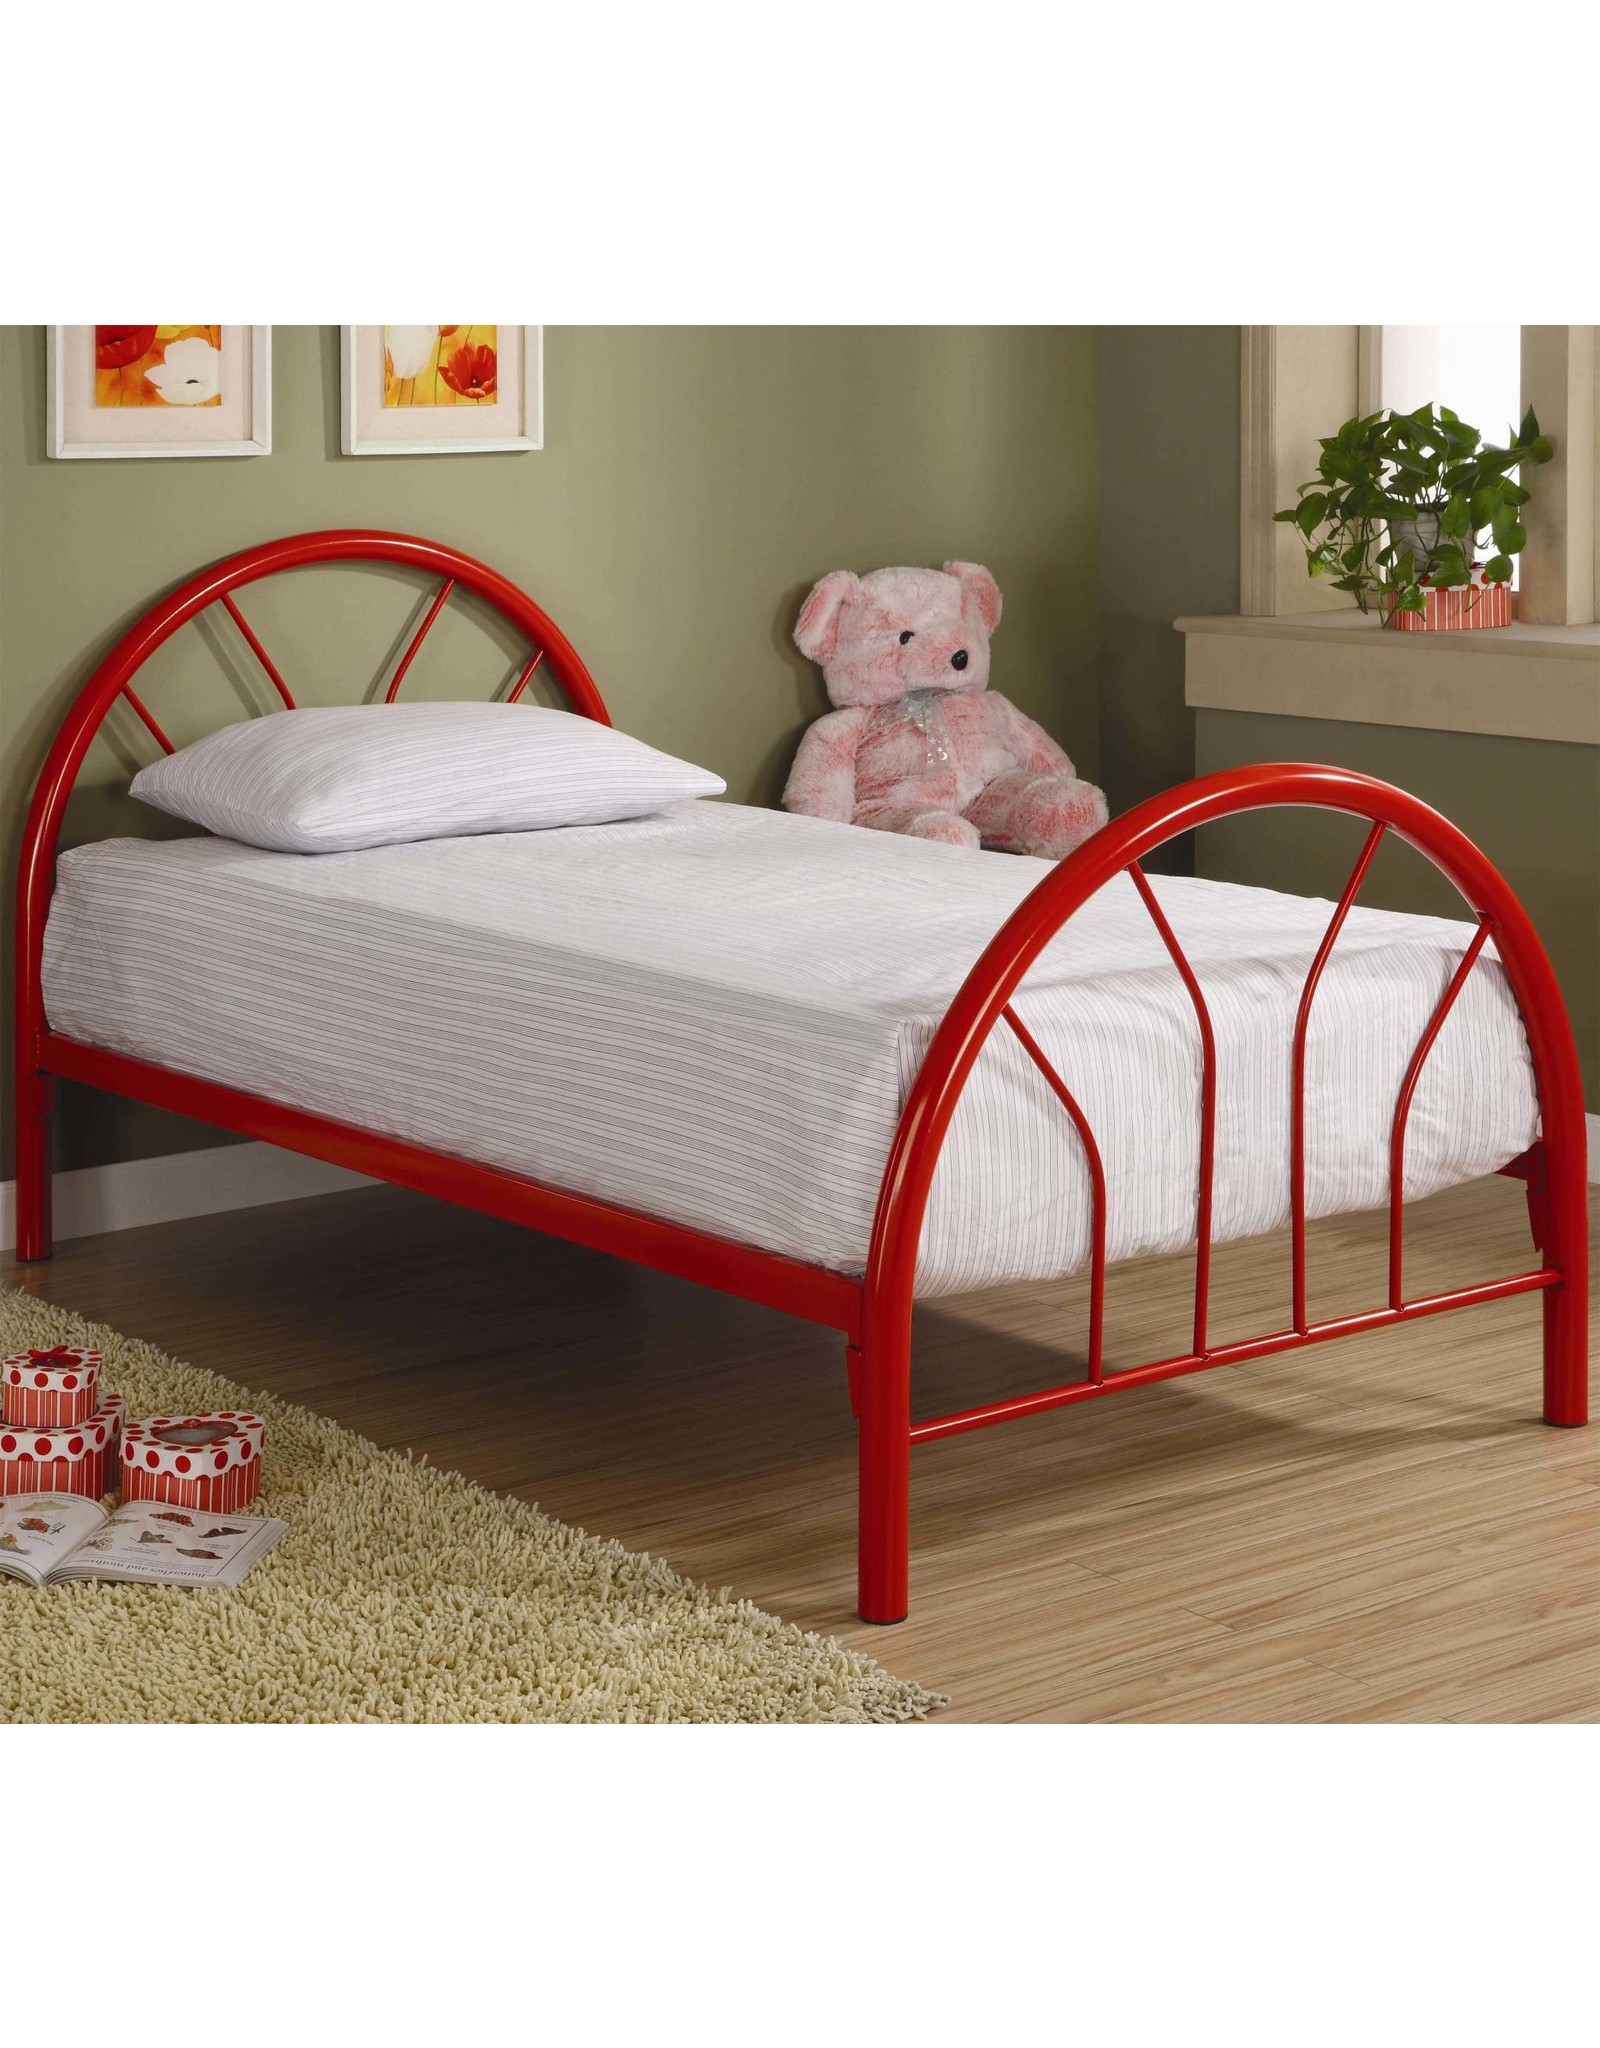 GR-215 Red Twin Bed